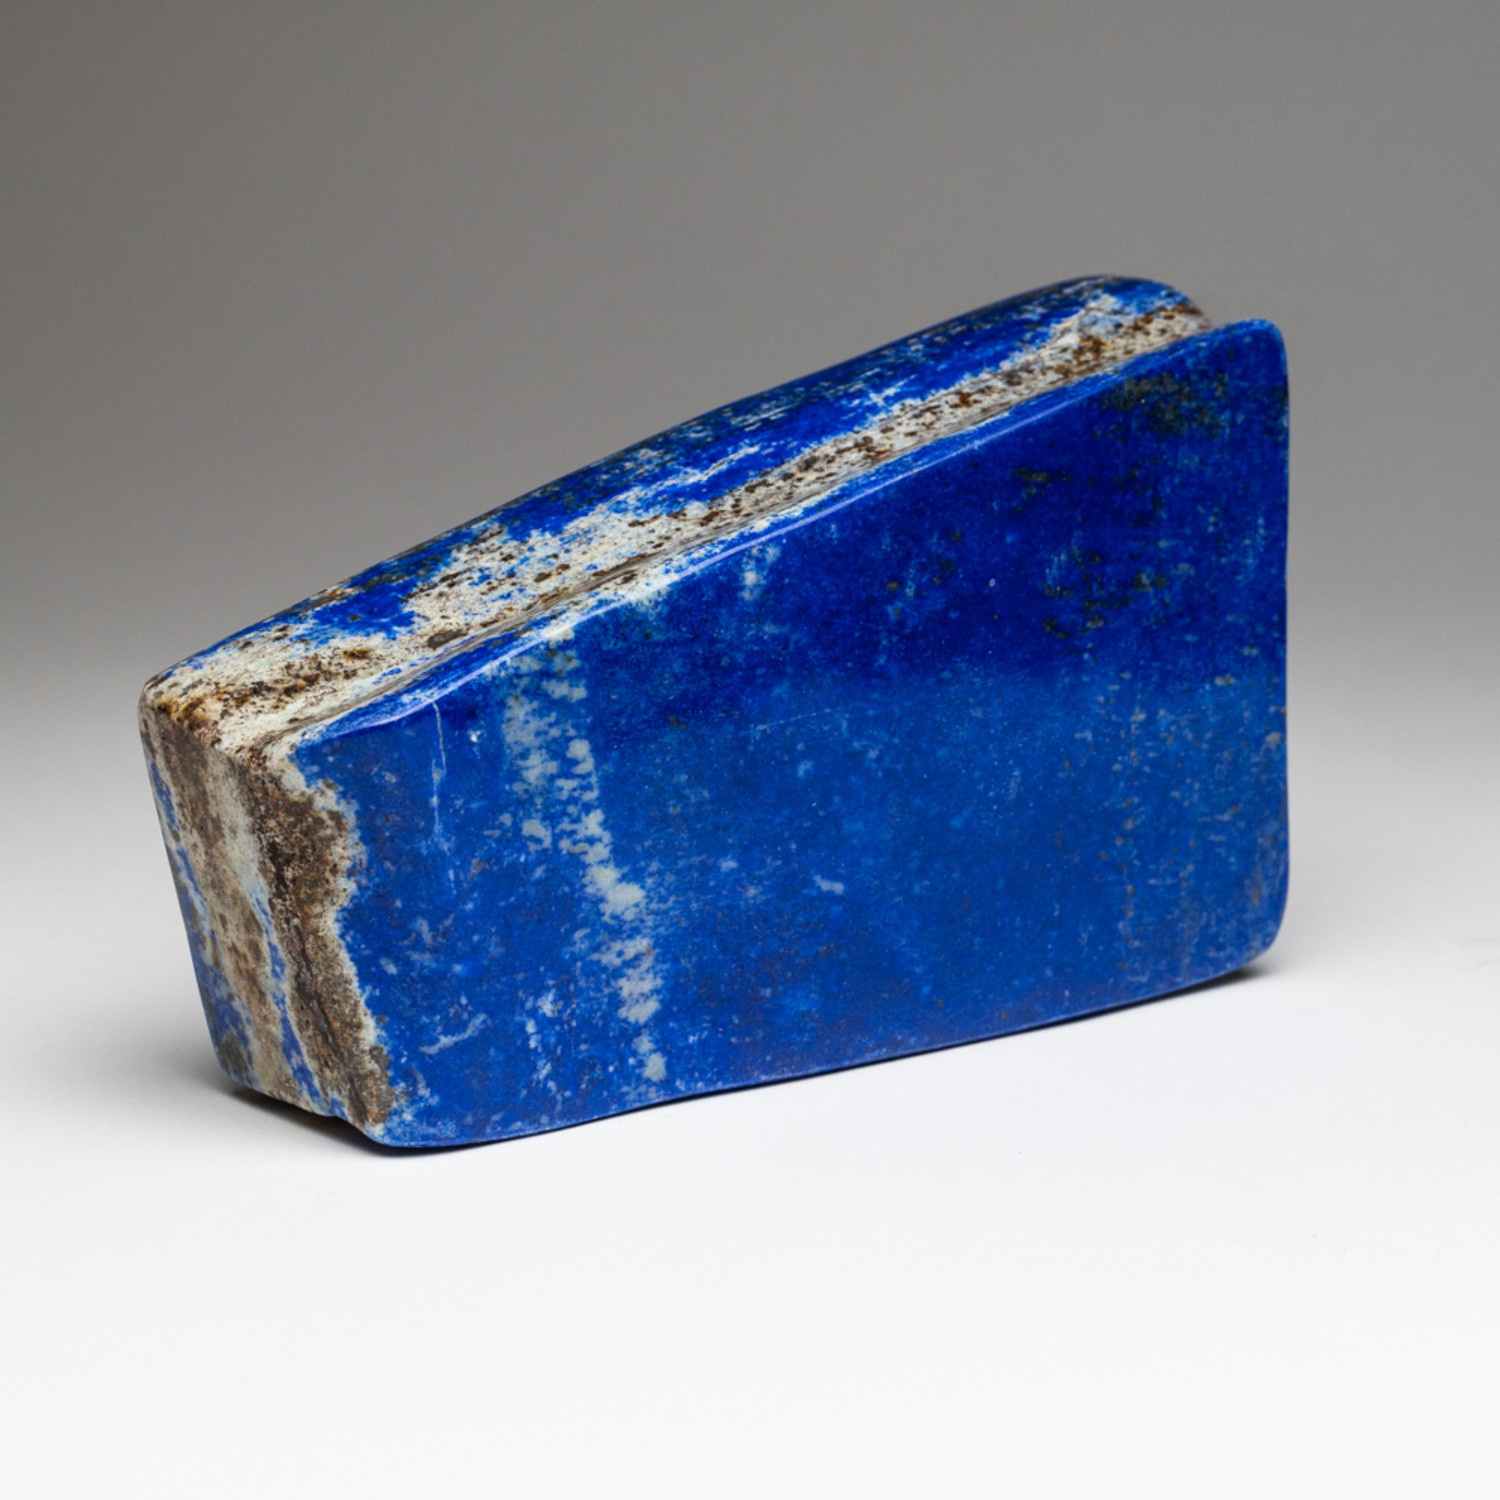 Polished Lapis Lazuli Freeform 4lbs 4 5 Height Astro Gallery Touch Of Modern